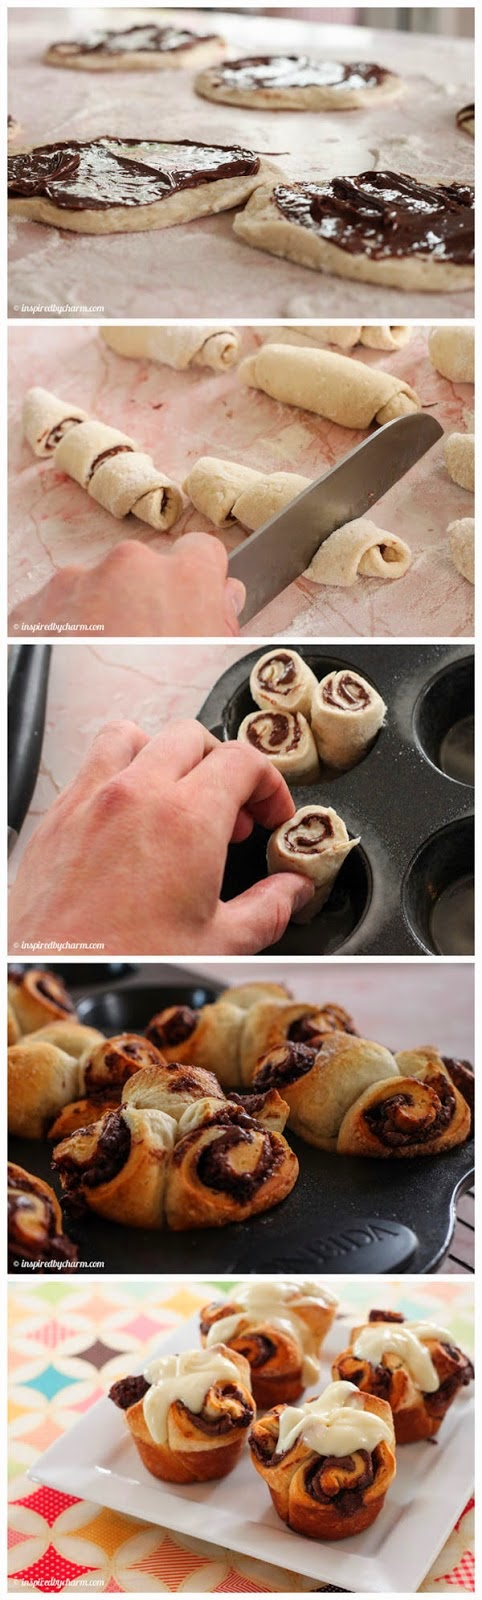 How To Make Nutella Rolls with Cream Cheese Icing